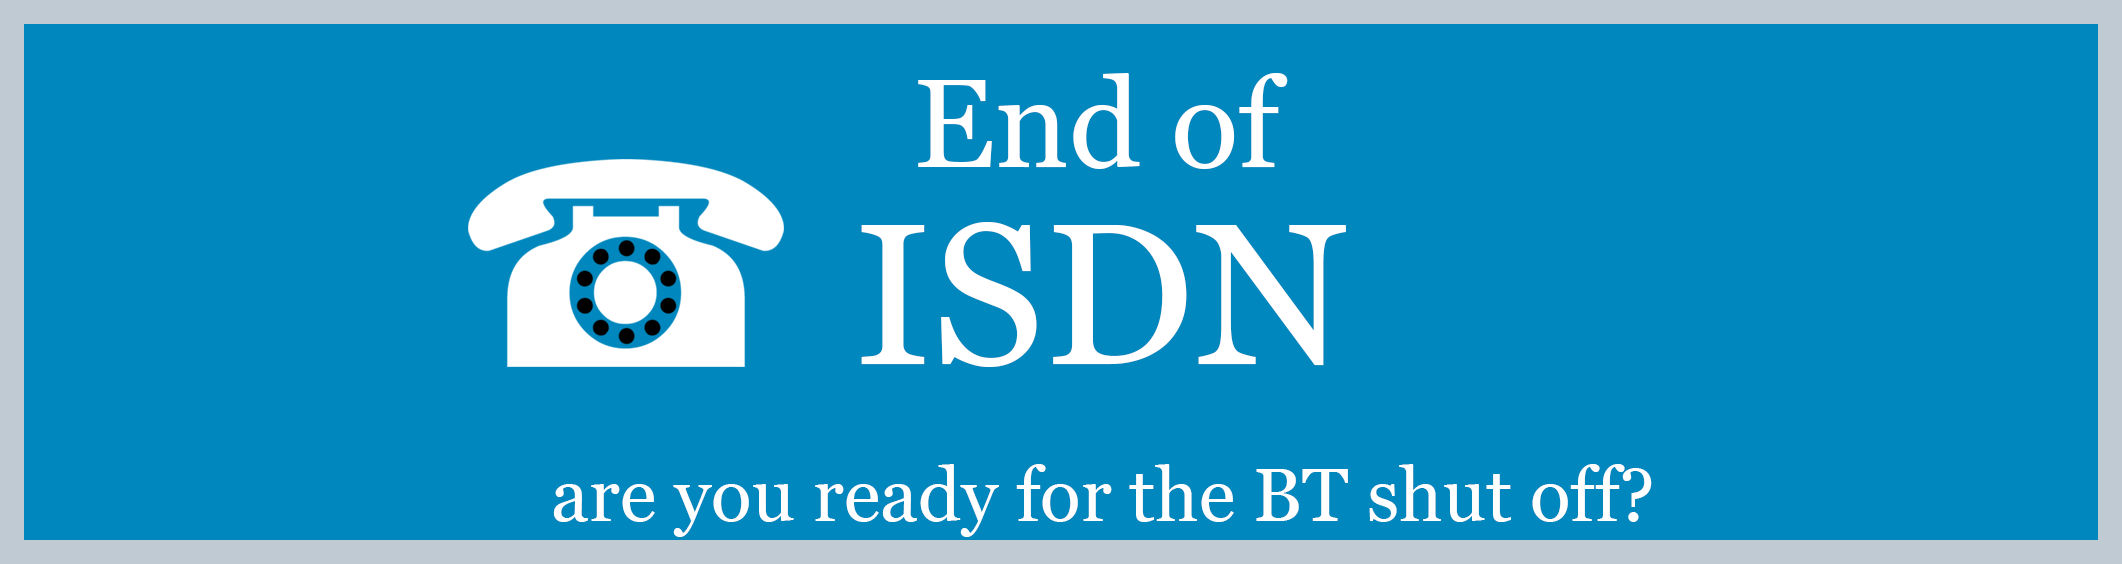 BT Shutting-off ISDN Services